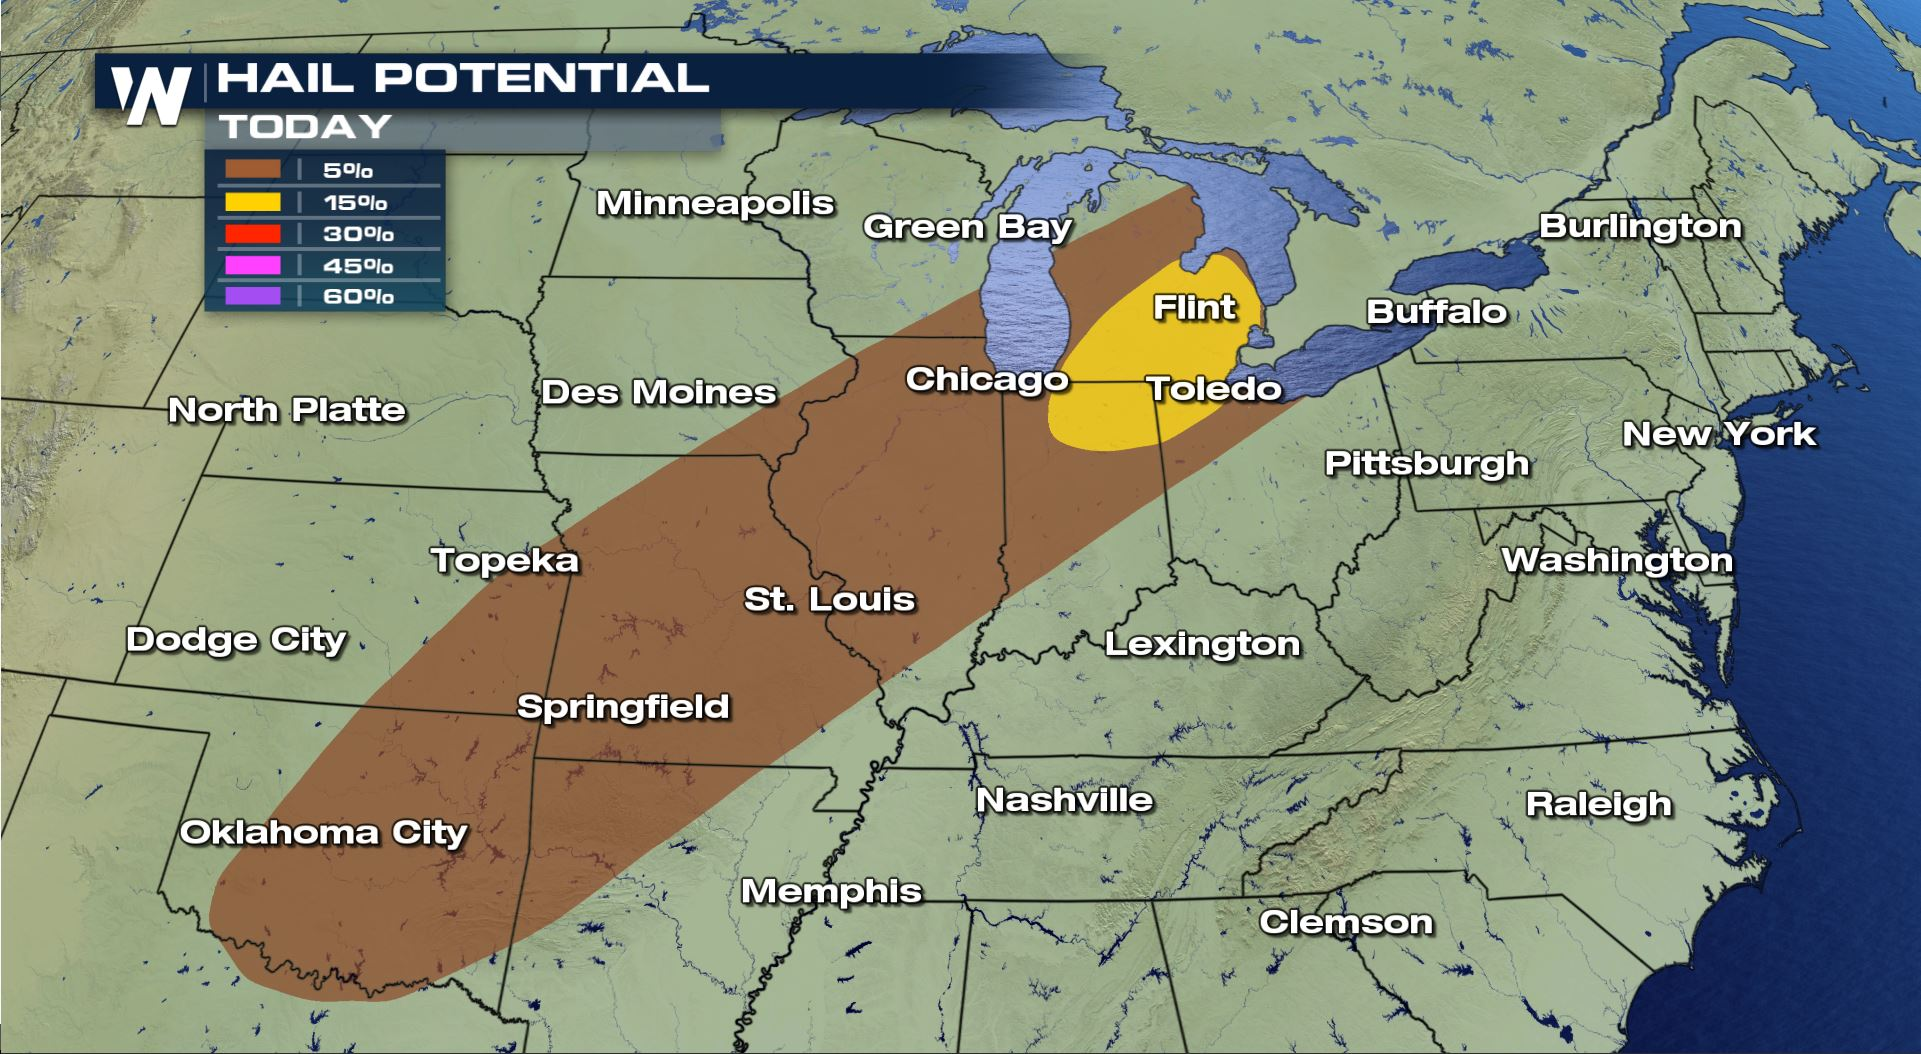 Severe Weather Risk for Areas of Ohio, Indiana and Michigan ... on indiana barometric pressure map, indiana climate, indiana snow forecast map, indiana fall foliage map, indiana utilities map, indiana precipitation map, indiana voting map, indiana people map, indiana sports map, indiana radar in motion, indiana storm map, indiana landmarks map, indiana internet map, indiana rural housing map, indiana crop map, indiana postal codes map, indiana tv map, indiana history map, indiana district map, indiana time map,